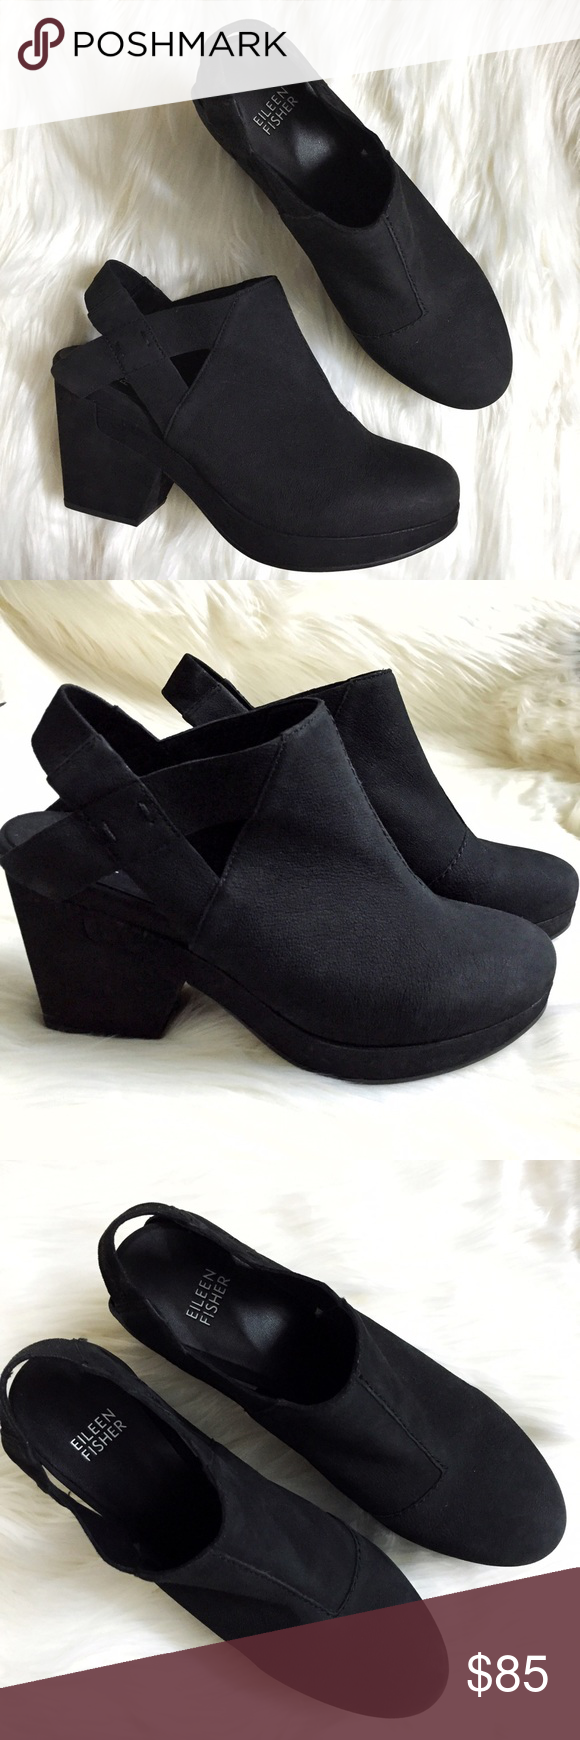 7865f52a82a Eileen Fisher Grip Platform Clog Booties Boots Brand new WITHOUT tags or  box